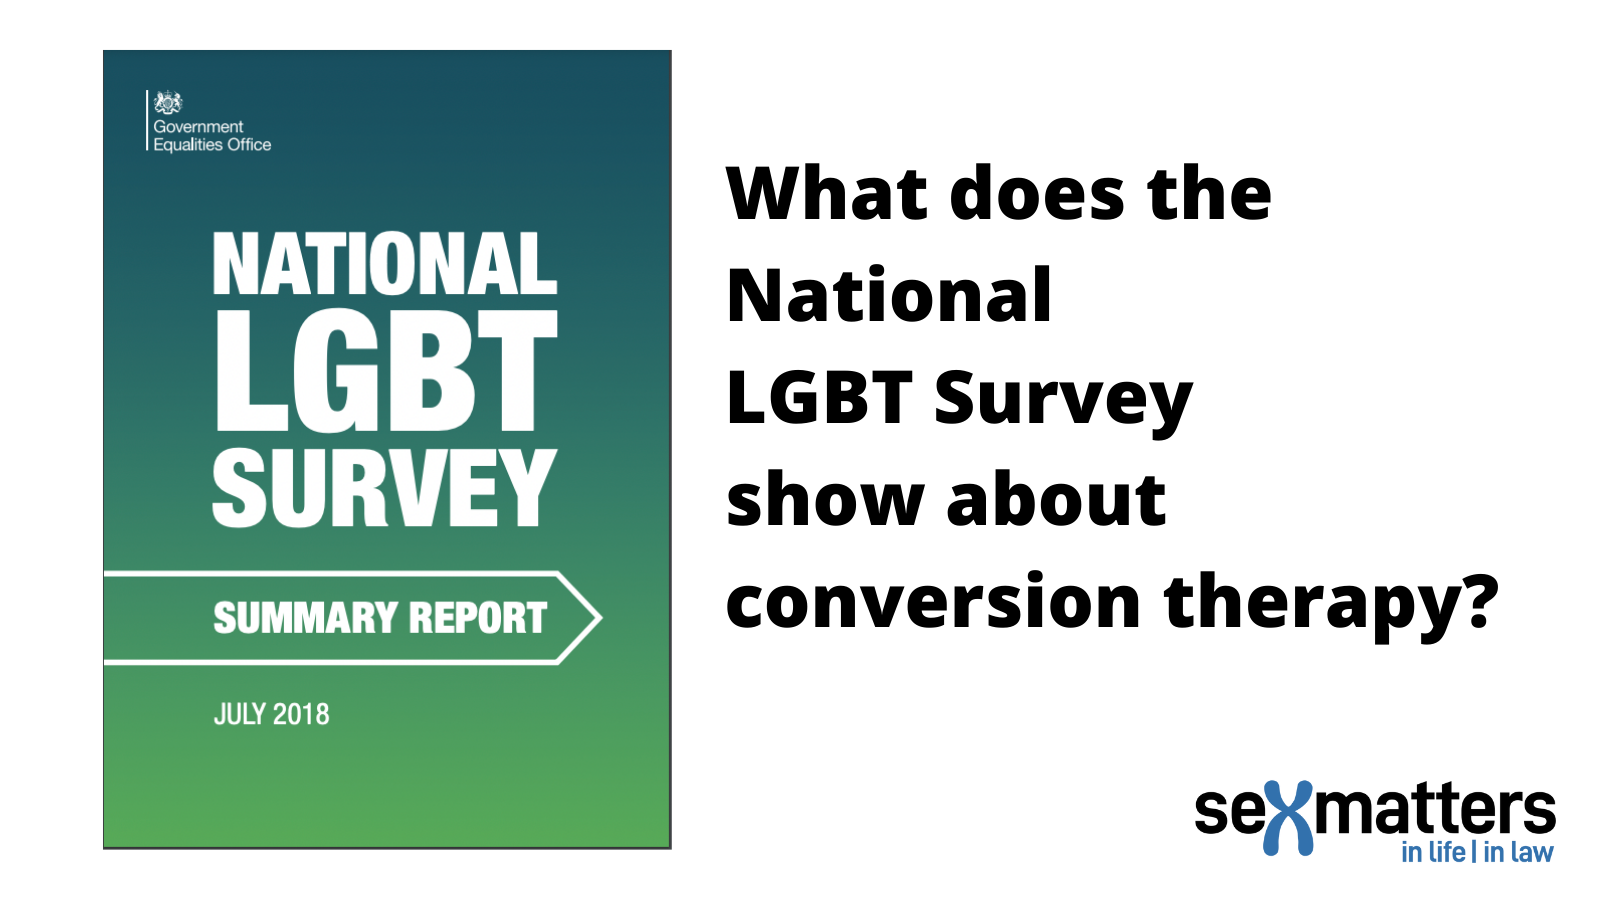 What does the National LGBT Survey Show about Conversion Therapy